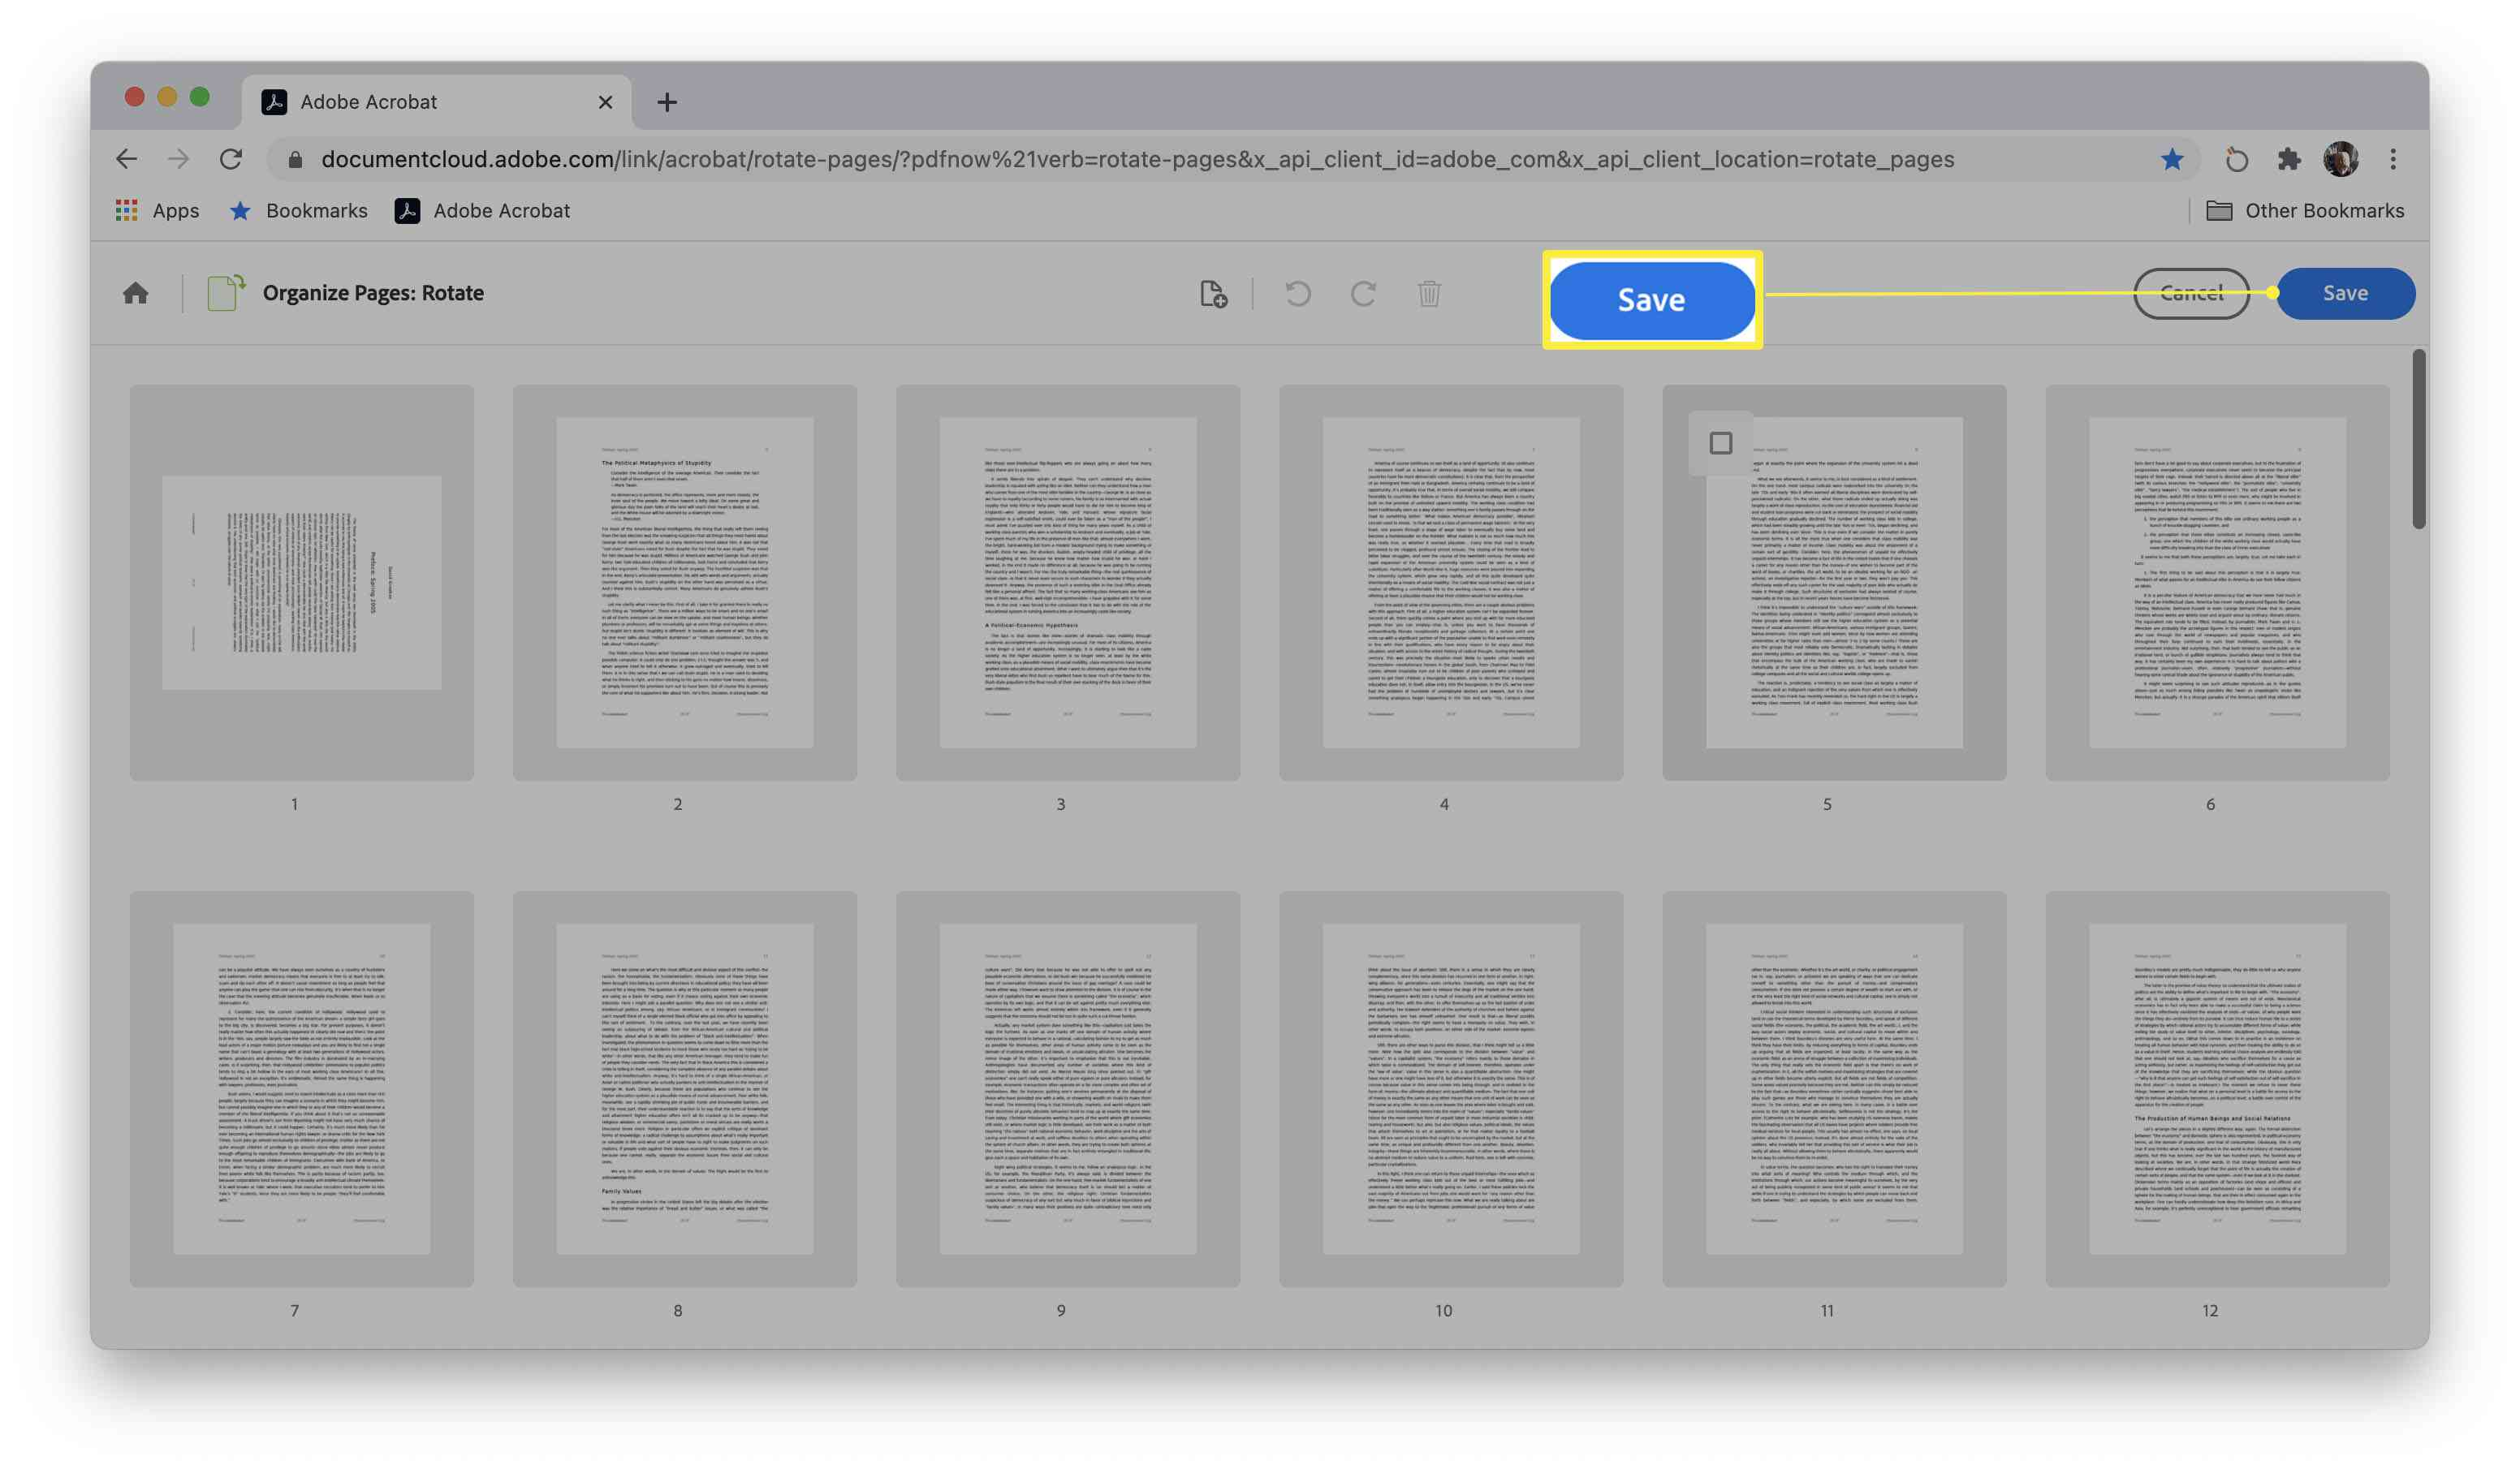 Adobe rotating PDF site with Save dialog box highlighted after manipulating PDF